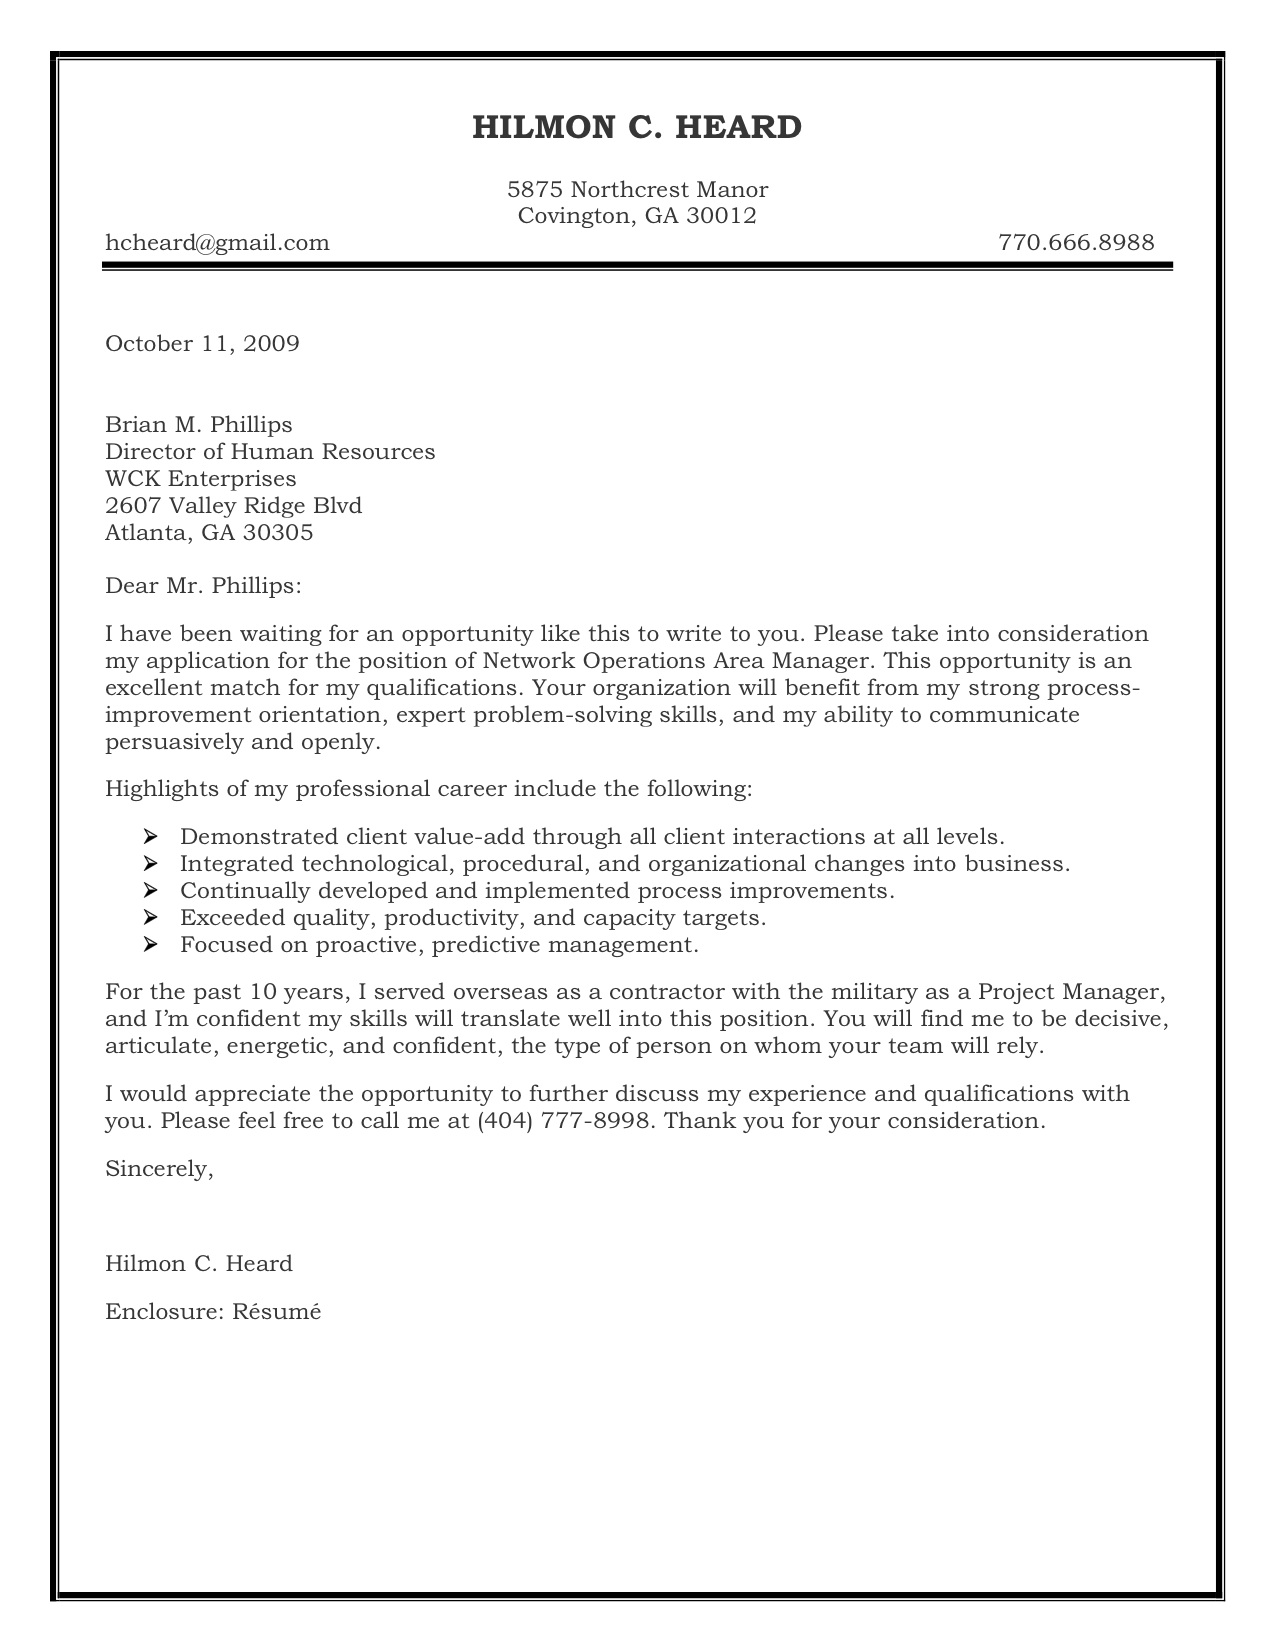 Sample Cover Letter For A Volunteer Position Pacific School Of Religion  Standard Cover Letter Format